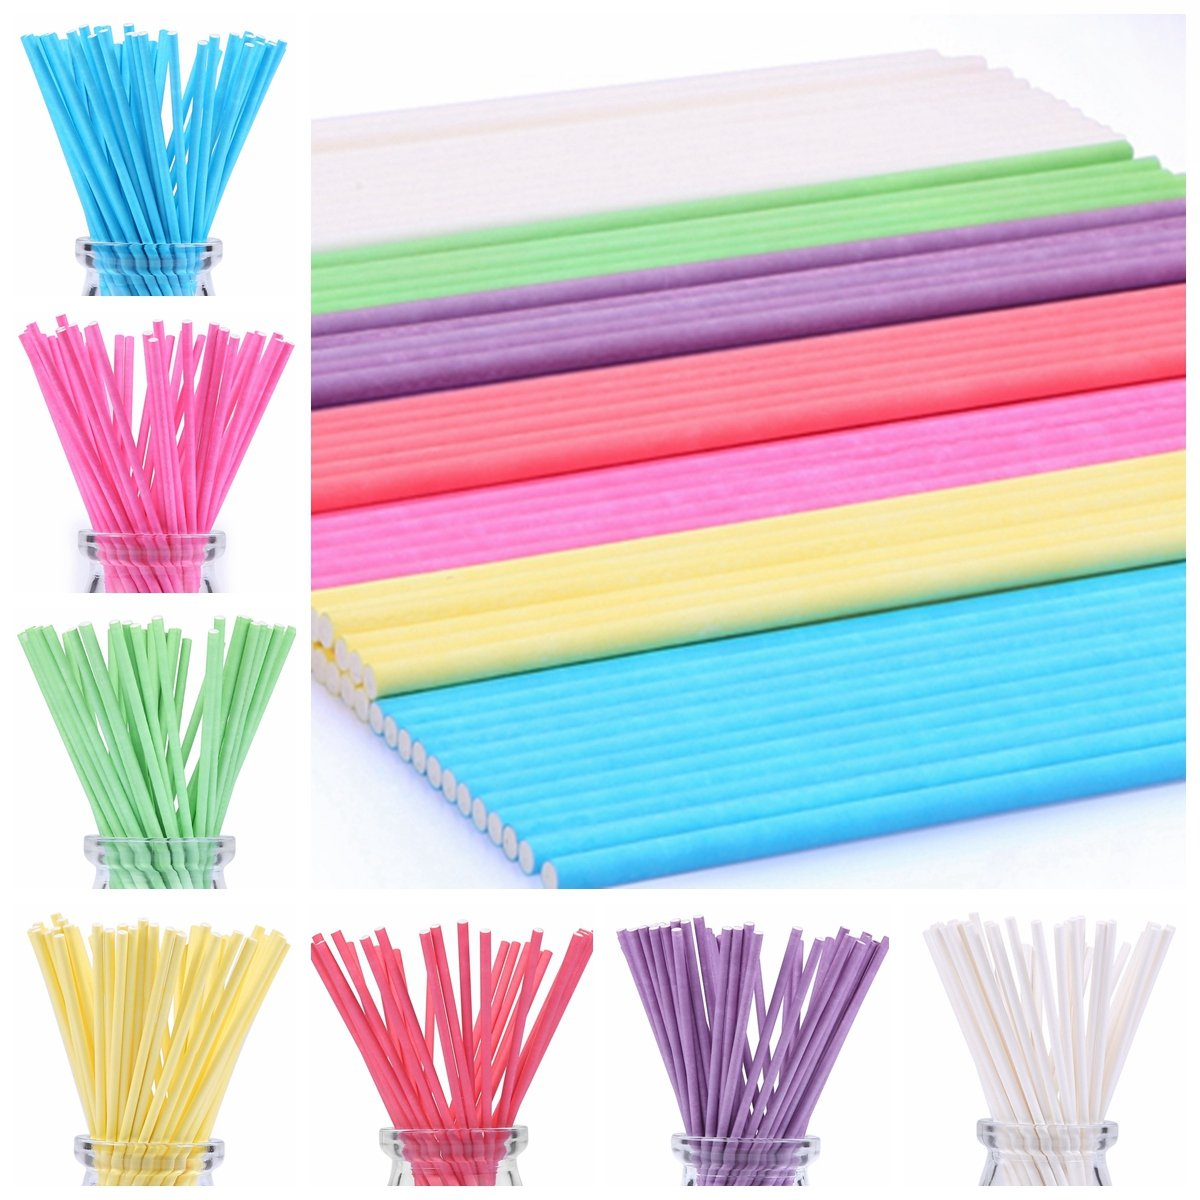 210ct 6 inch Colored Lollipop Sticks 7 Colors for Cake Pops Apple Candy (Rose-red, Blue, Yellow, Purple, Green, Watermelon Red, White) BakeBaking CP033102